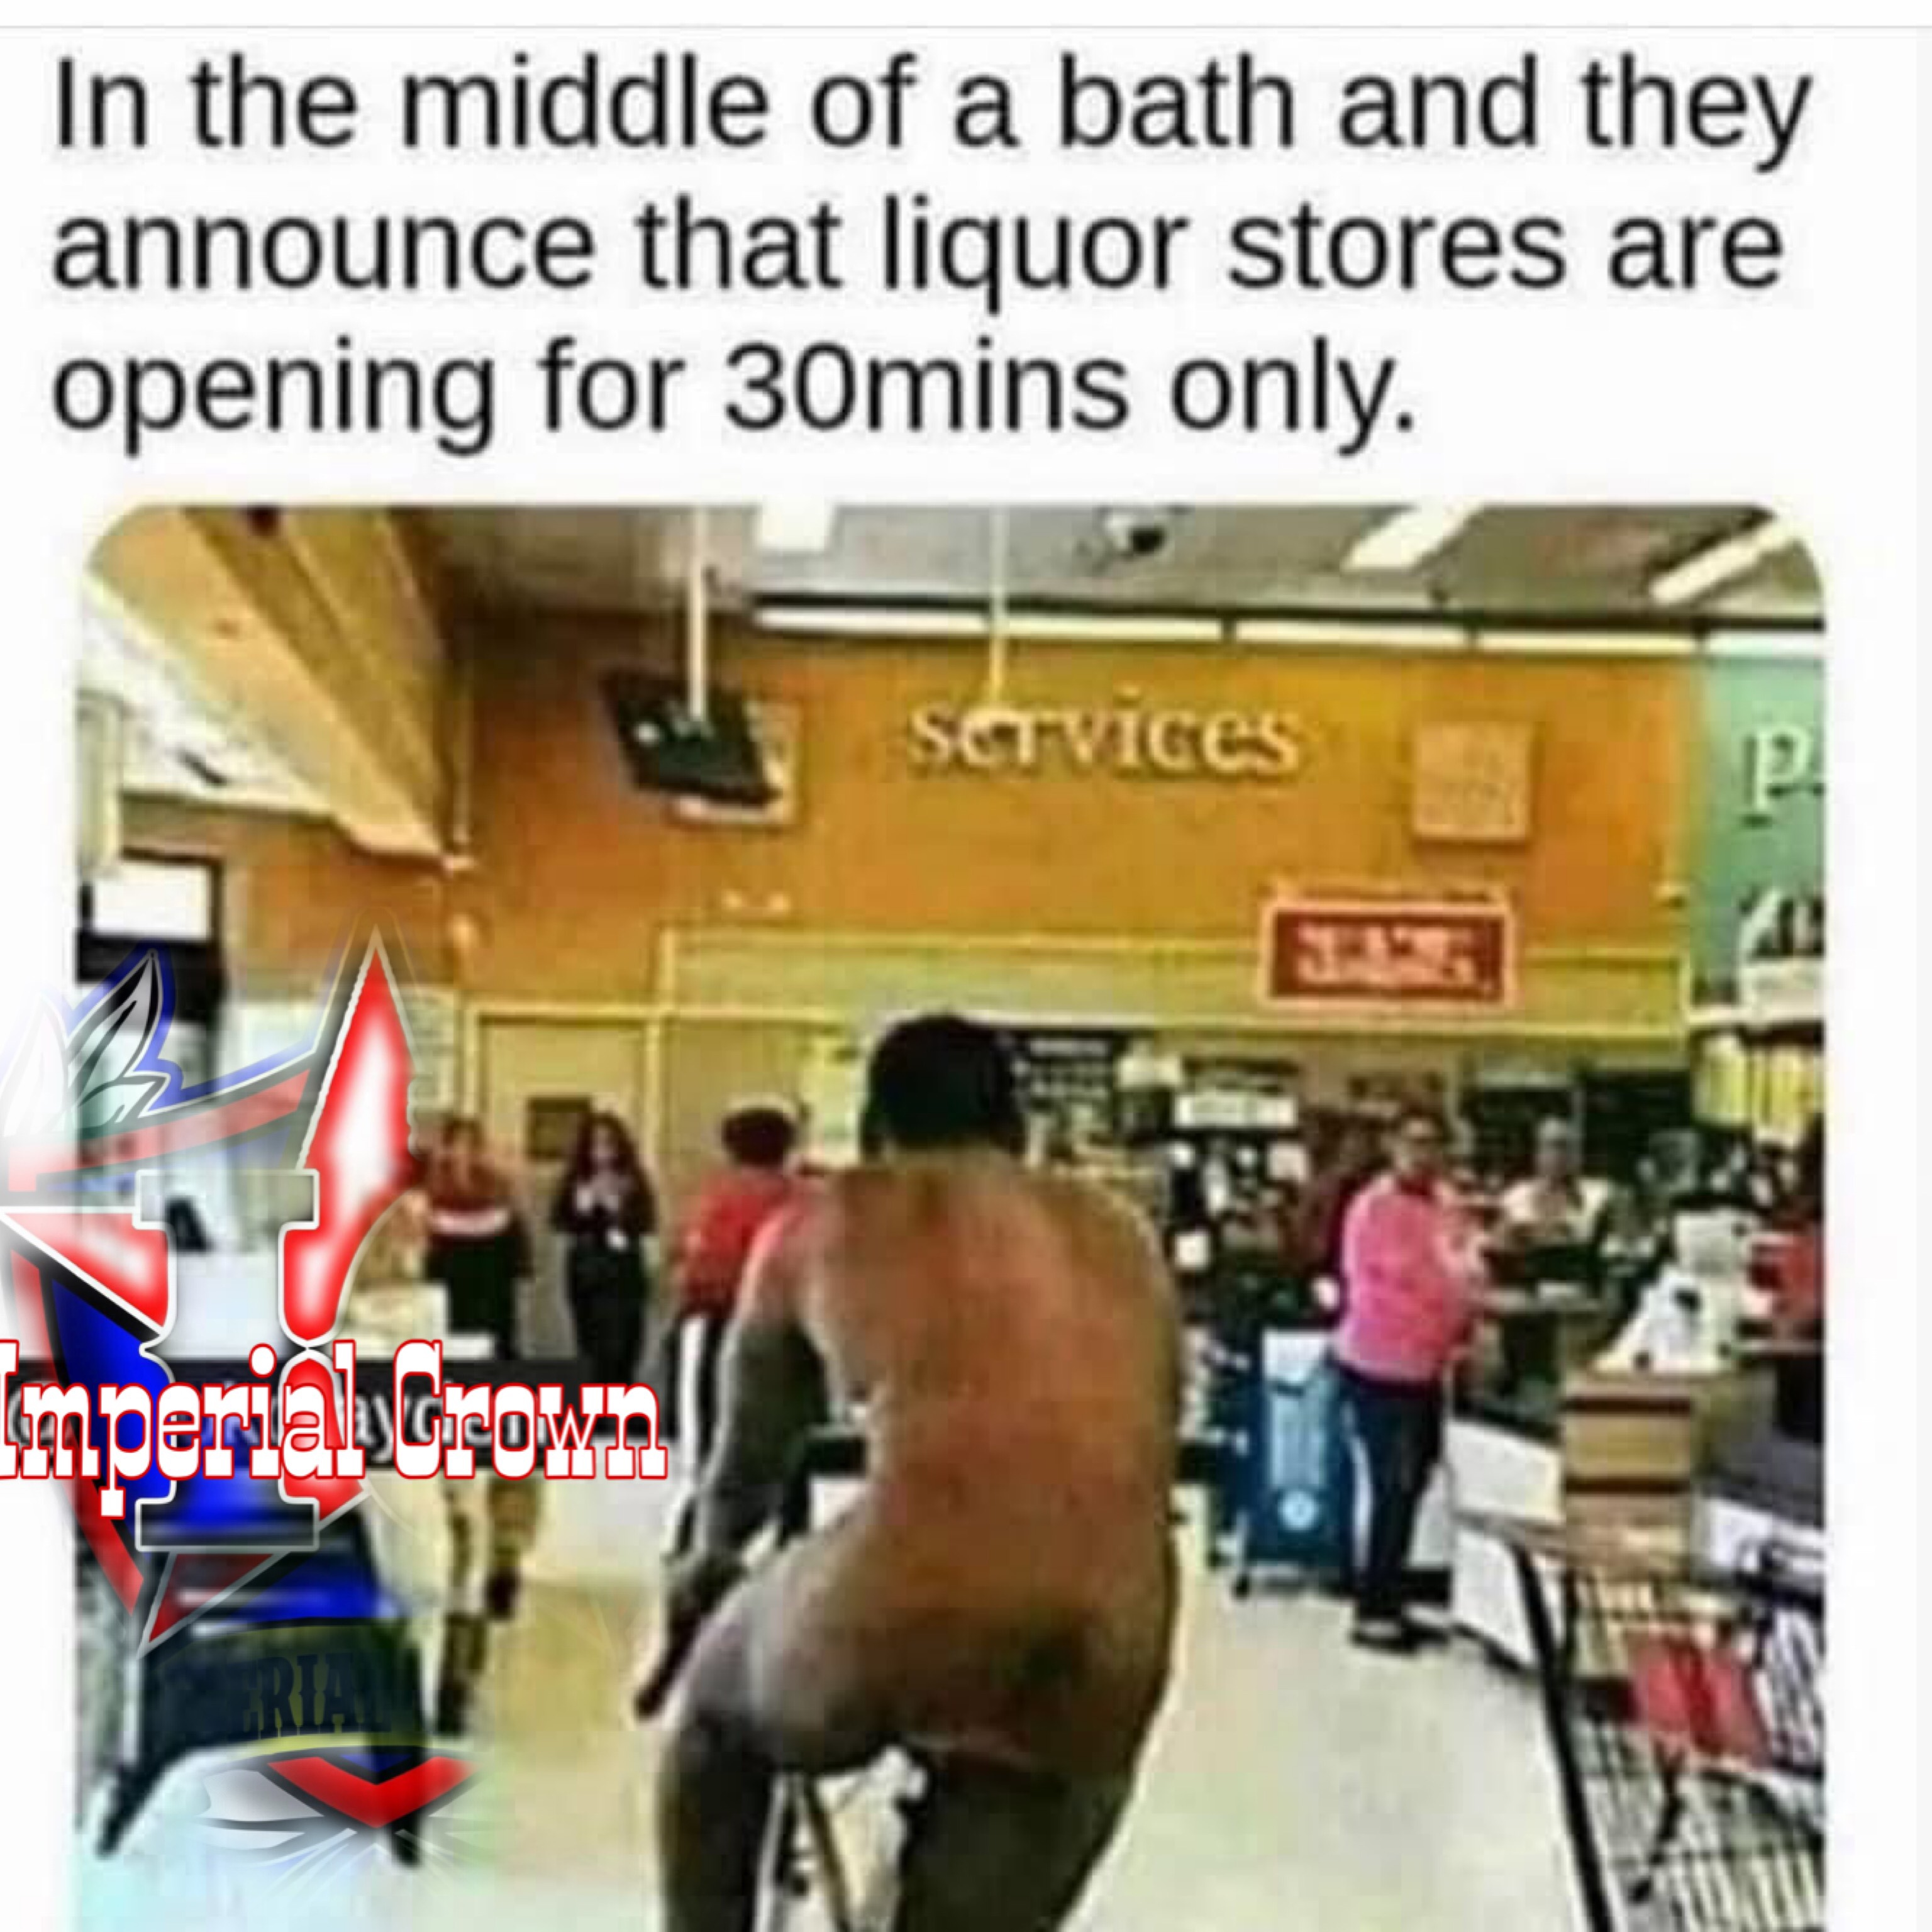 In the middle of a bath and they announce that liquor stores are opening for 30 mins only